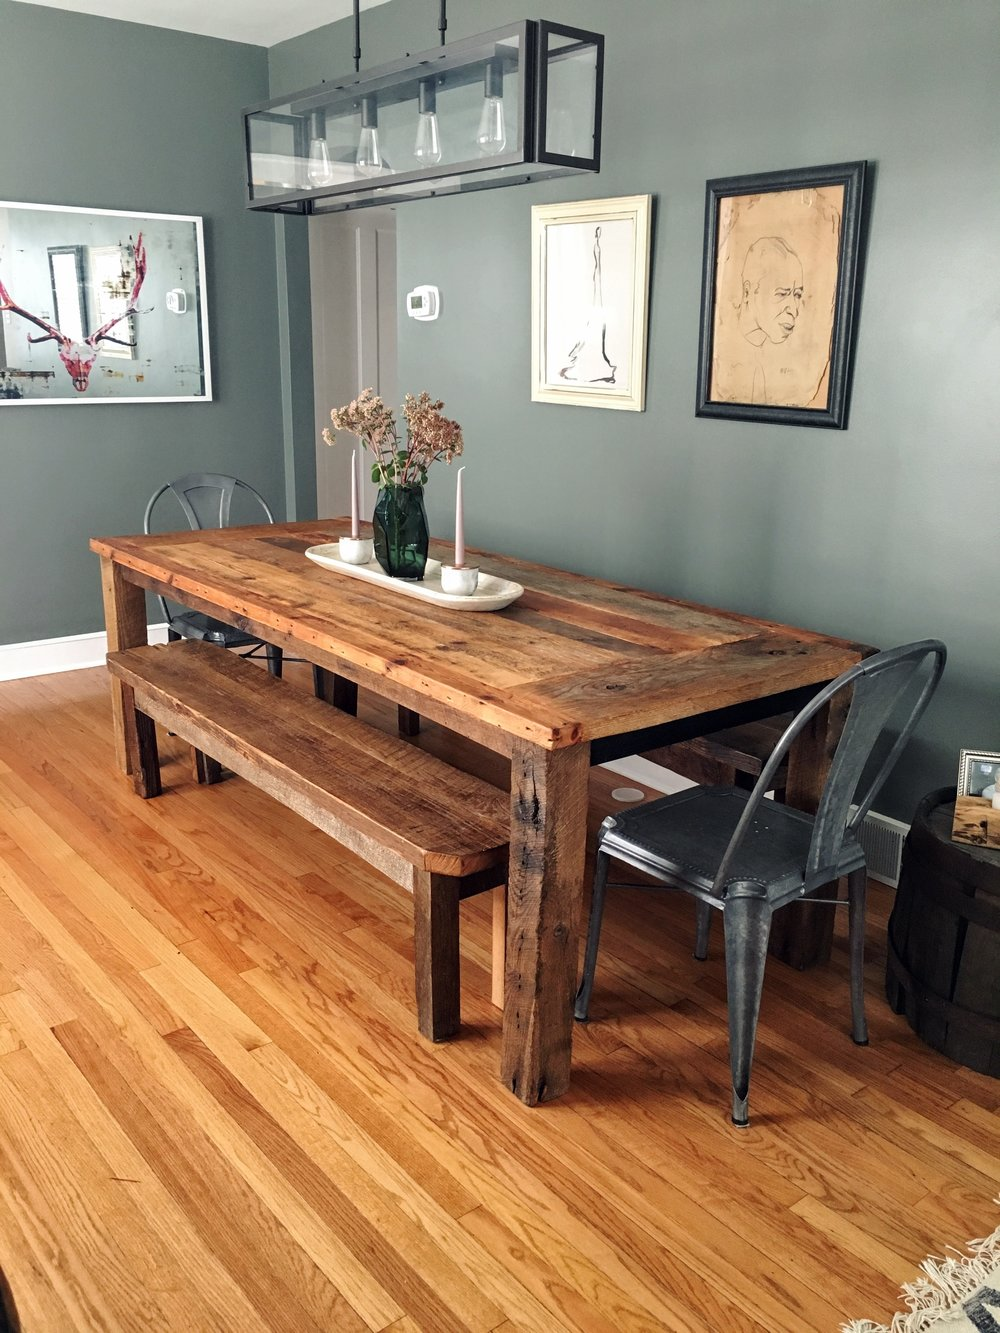 Reclaimed Wood Farmhouse Dining Table / Textured Finish